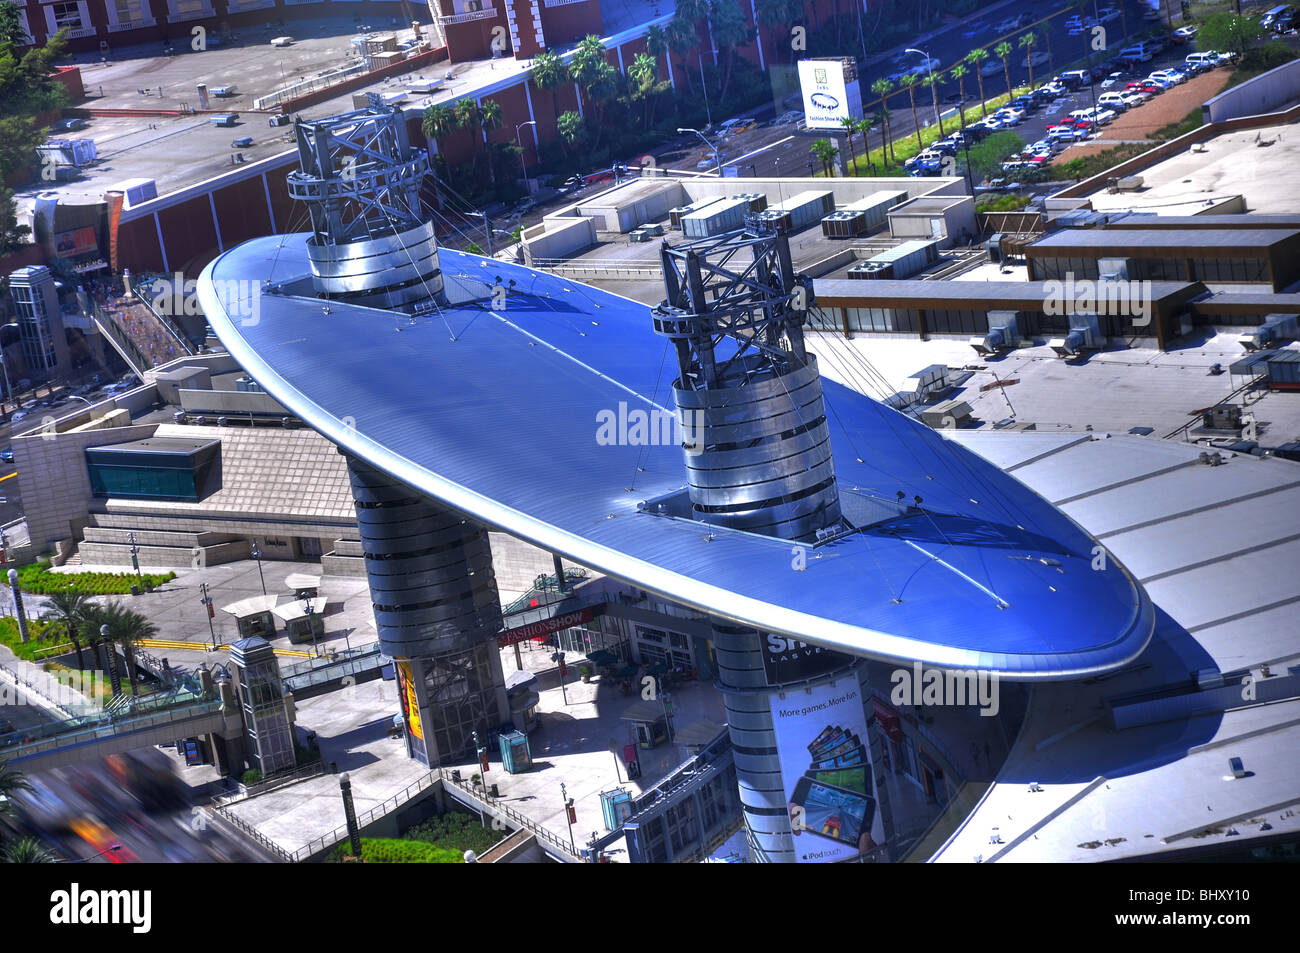 Deliberately tonemapped, bold-colored version of Fashion Square Mall overhang in Las Vegas. - Stock Image